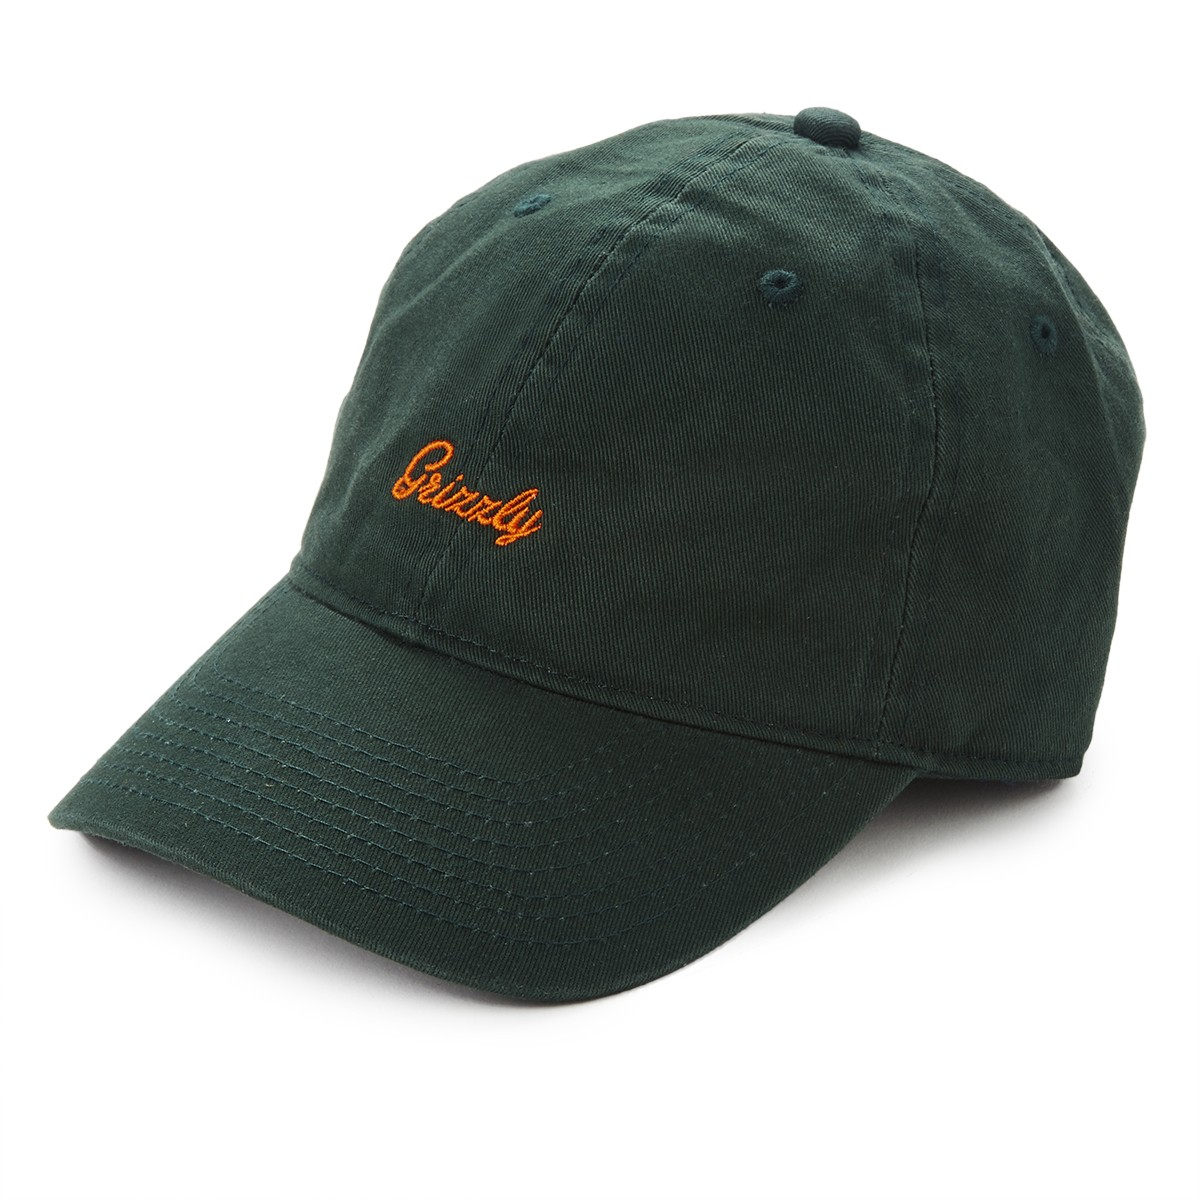 Grizzly Grip Late To The Game Dad Hat - spruce